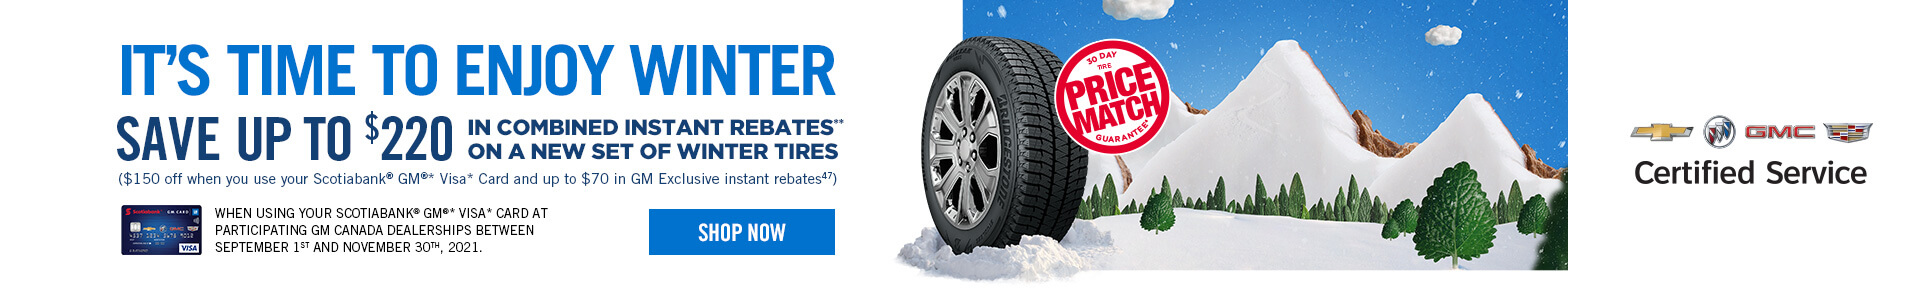 It's time to enjoy winter save up to $220 in combined instant rebates on a new set of winter tires - SHOP NOW